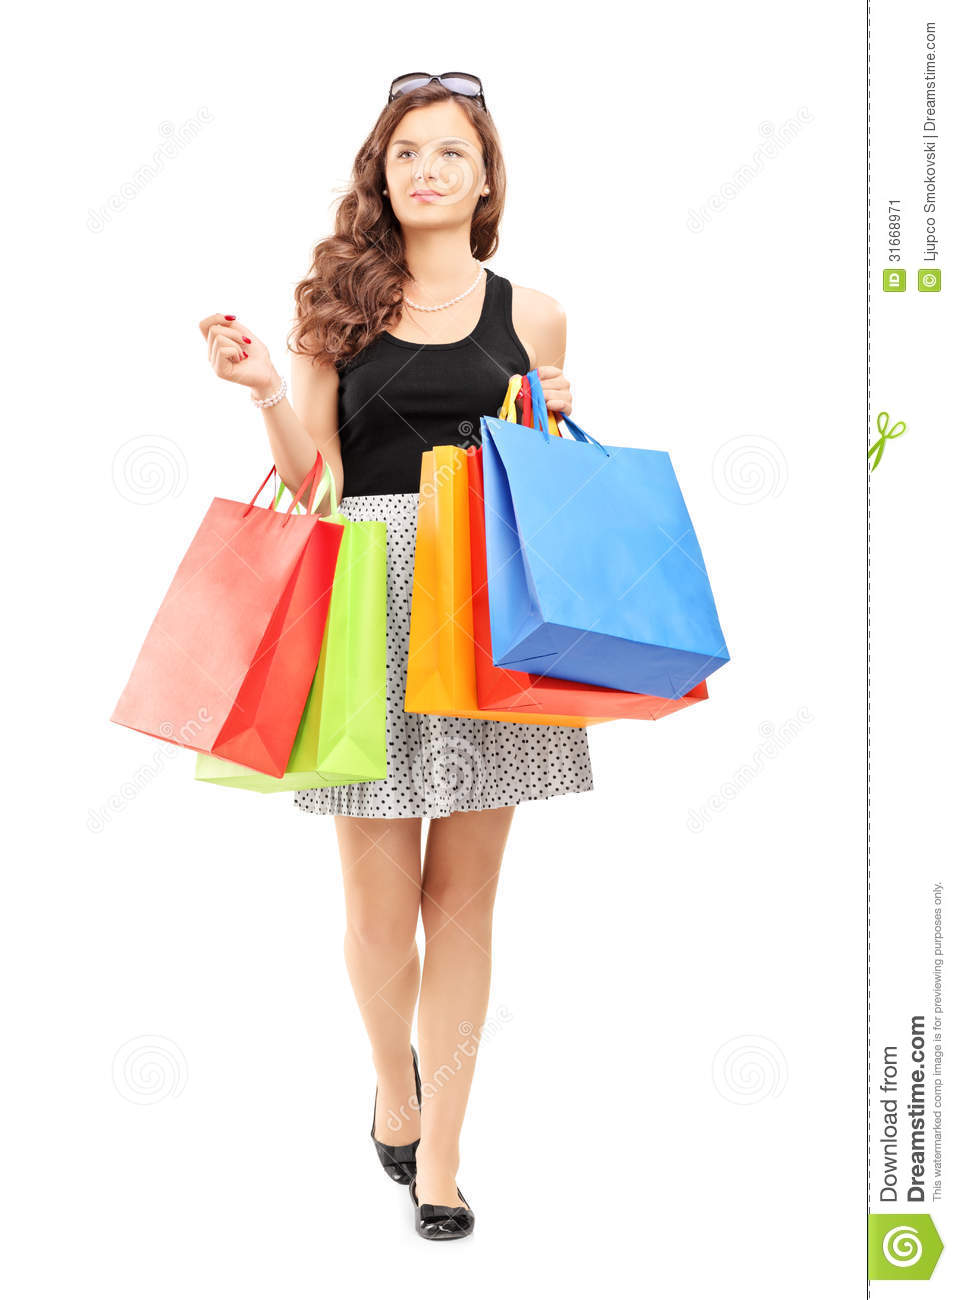 Woman posing with shopping bags isolated on white background full - Full Length Portrait Of A Young Woman Walking With Shopping Bags